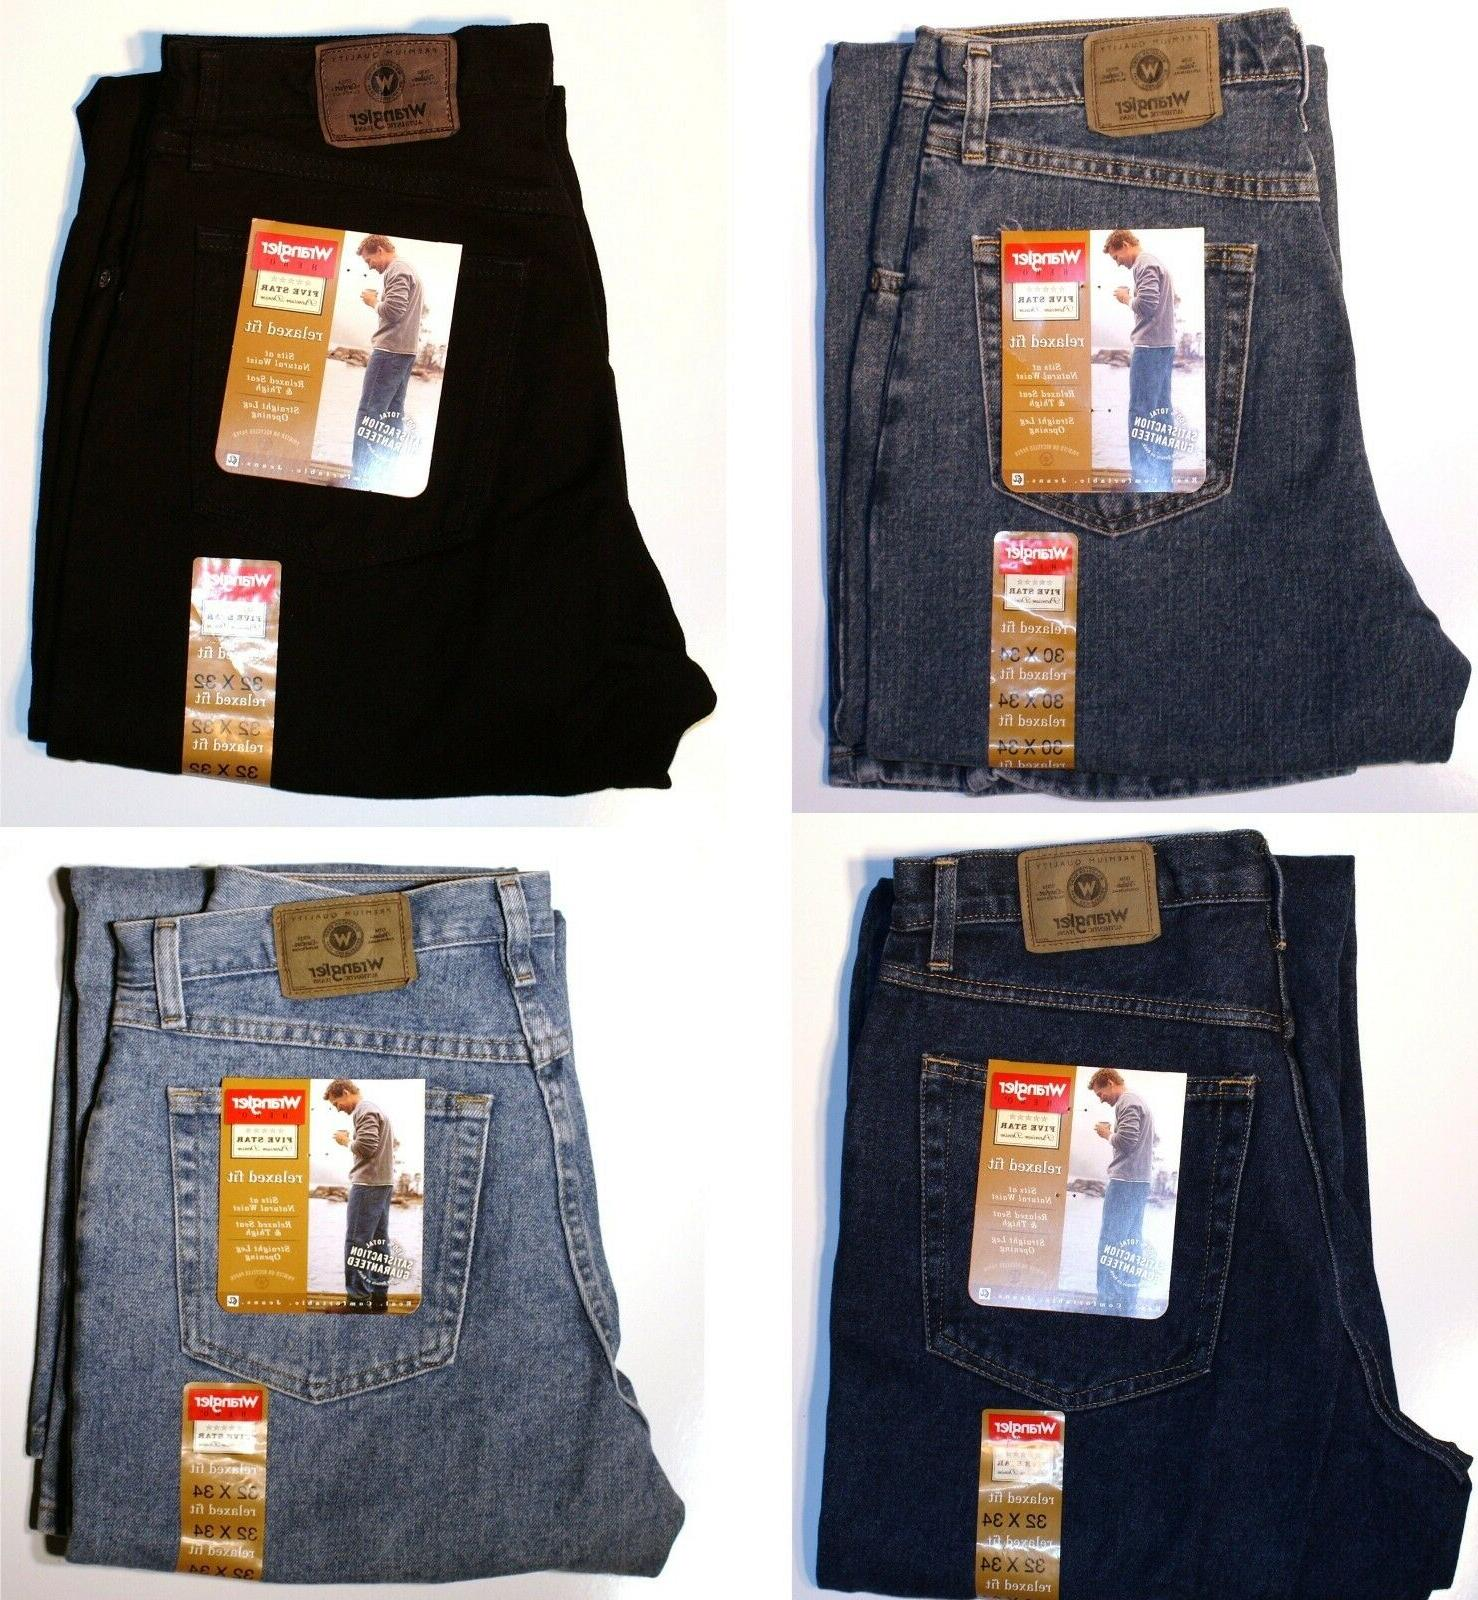 New Relaxed Jeans Big and Tall Sizes Four Available